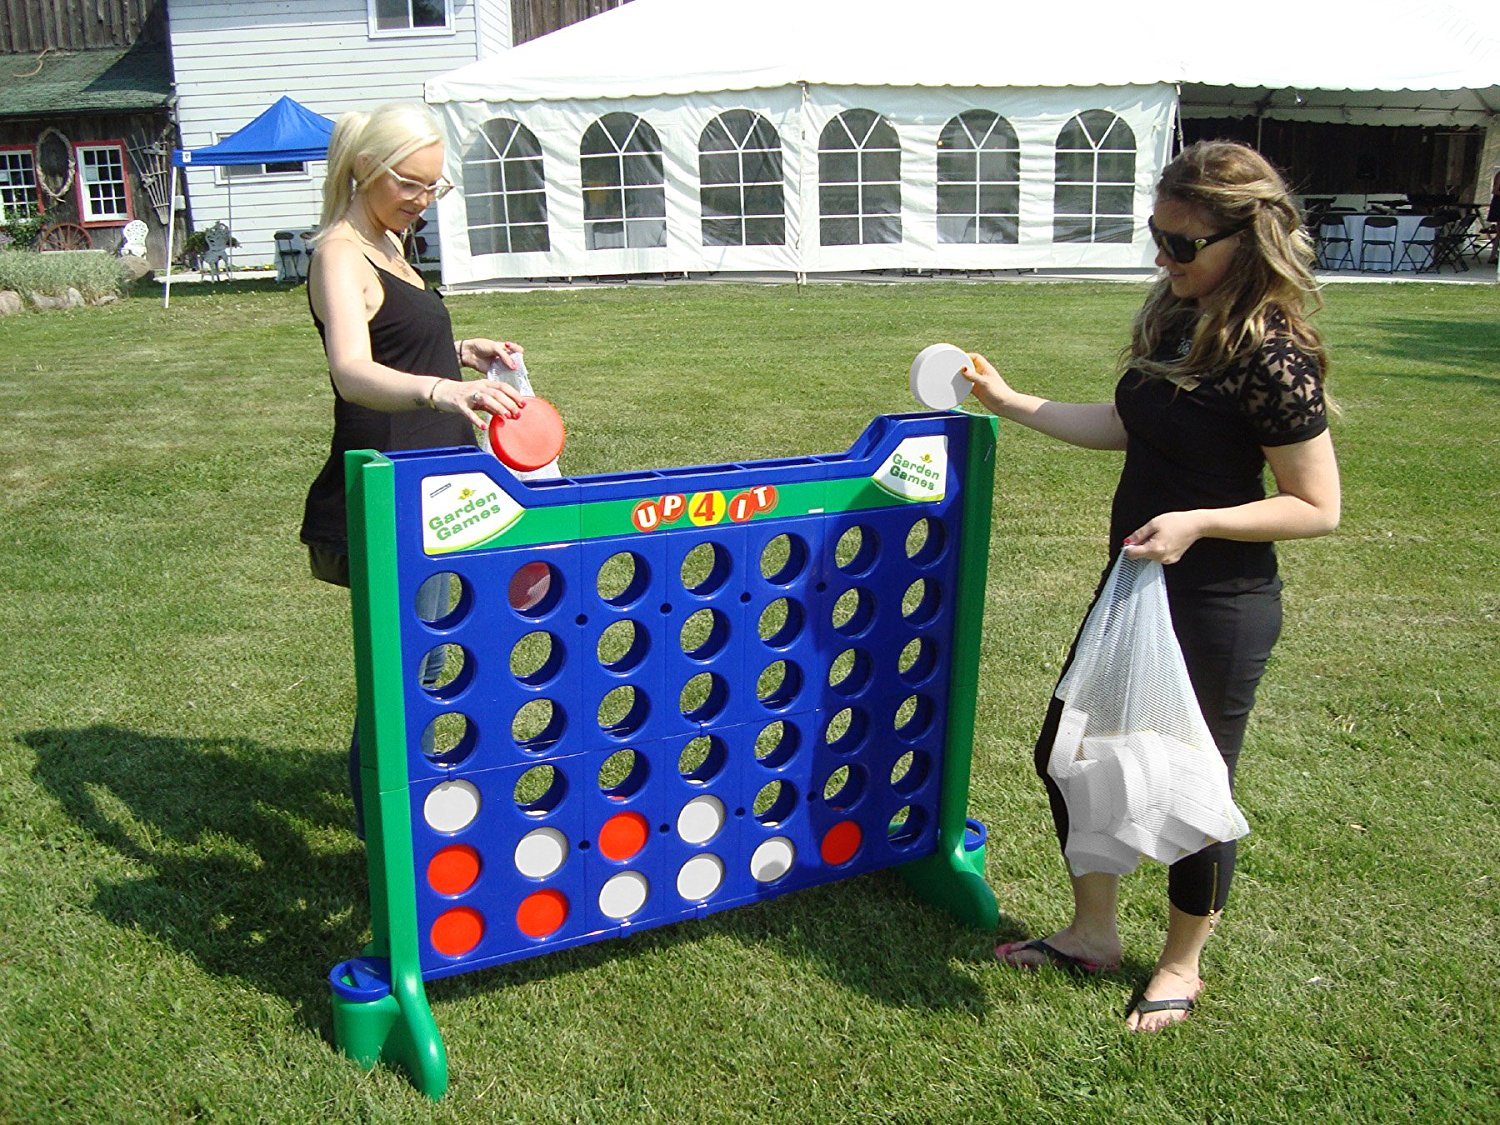 Jumbo Connect 4 Rental Giant Yard Games Denver Aurora Boulder Littleton Weddings